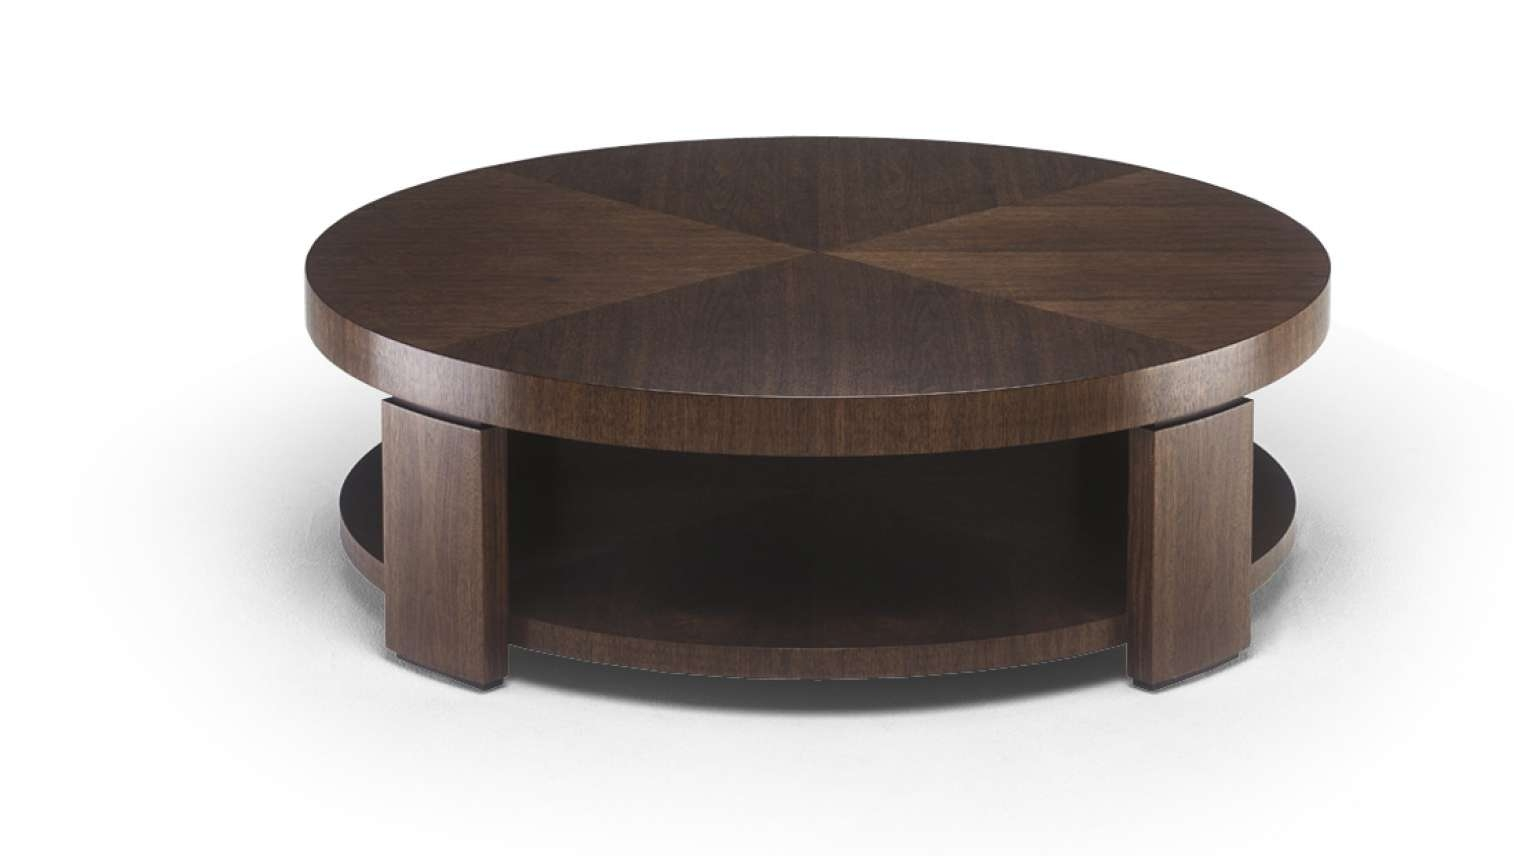 Coffee Table : Coffee Table Striking Dark Wood Images Ideas Glass With Regard To Best And Newest Dark Wood Round Coffee Tables (View 18 of 20)